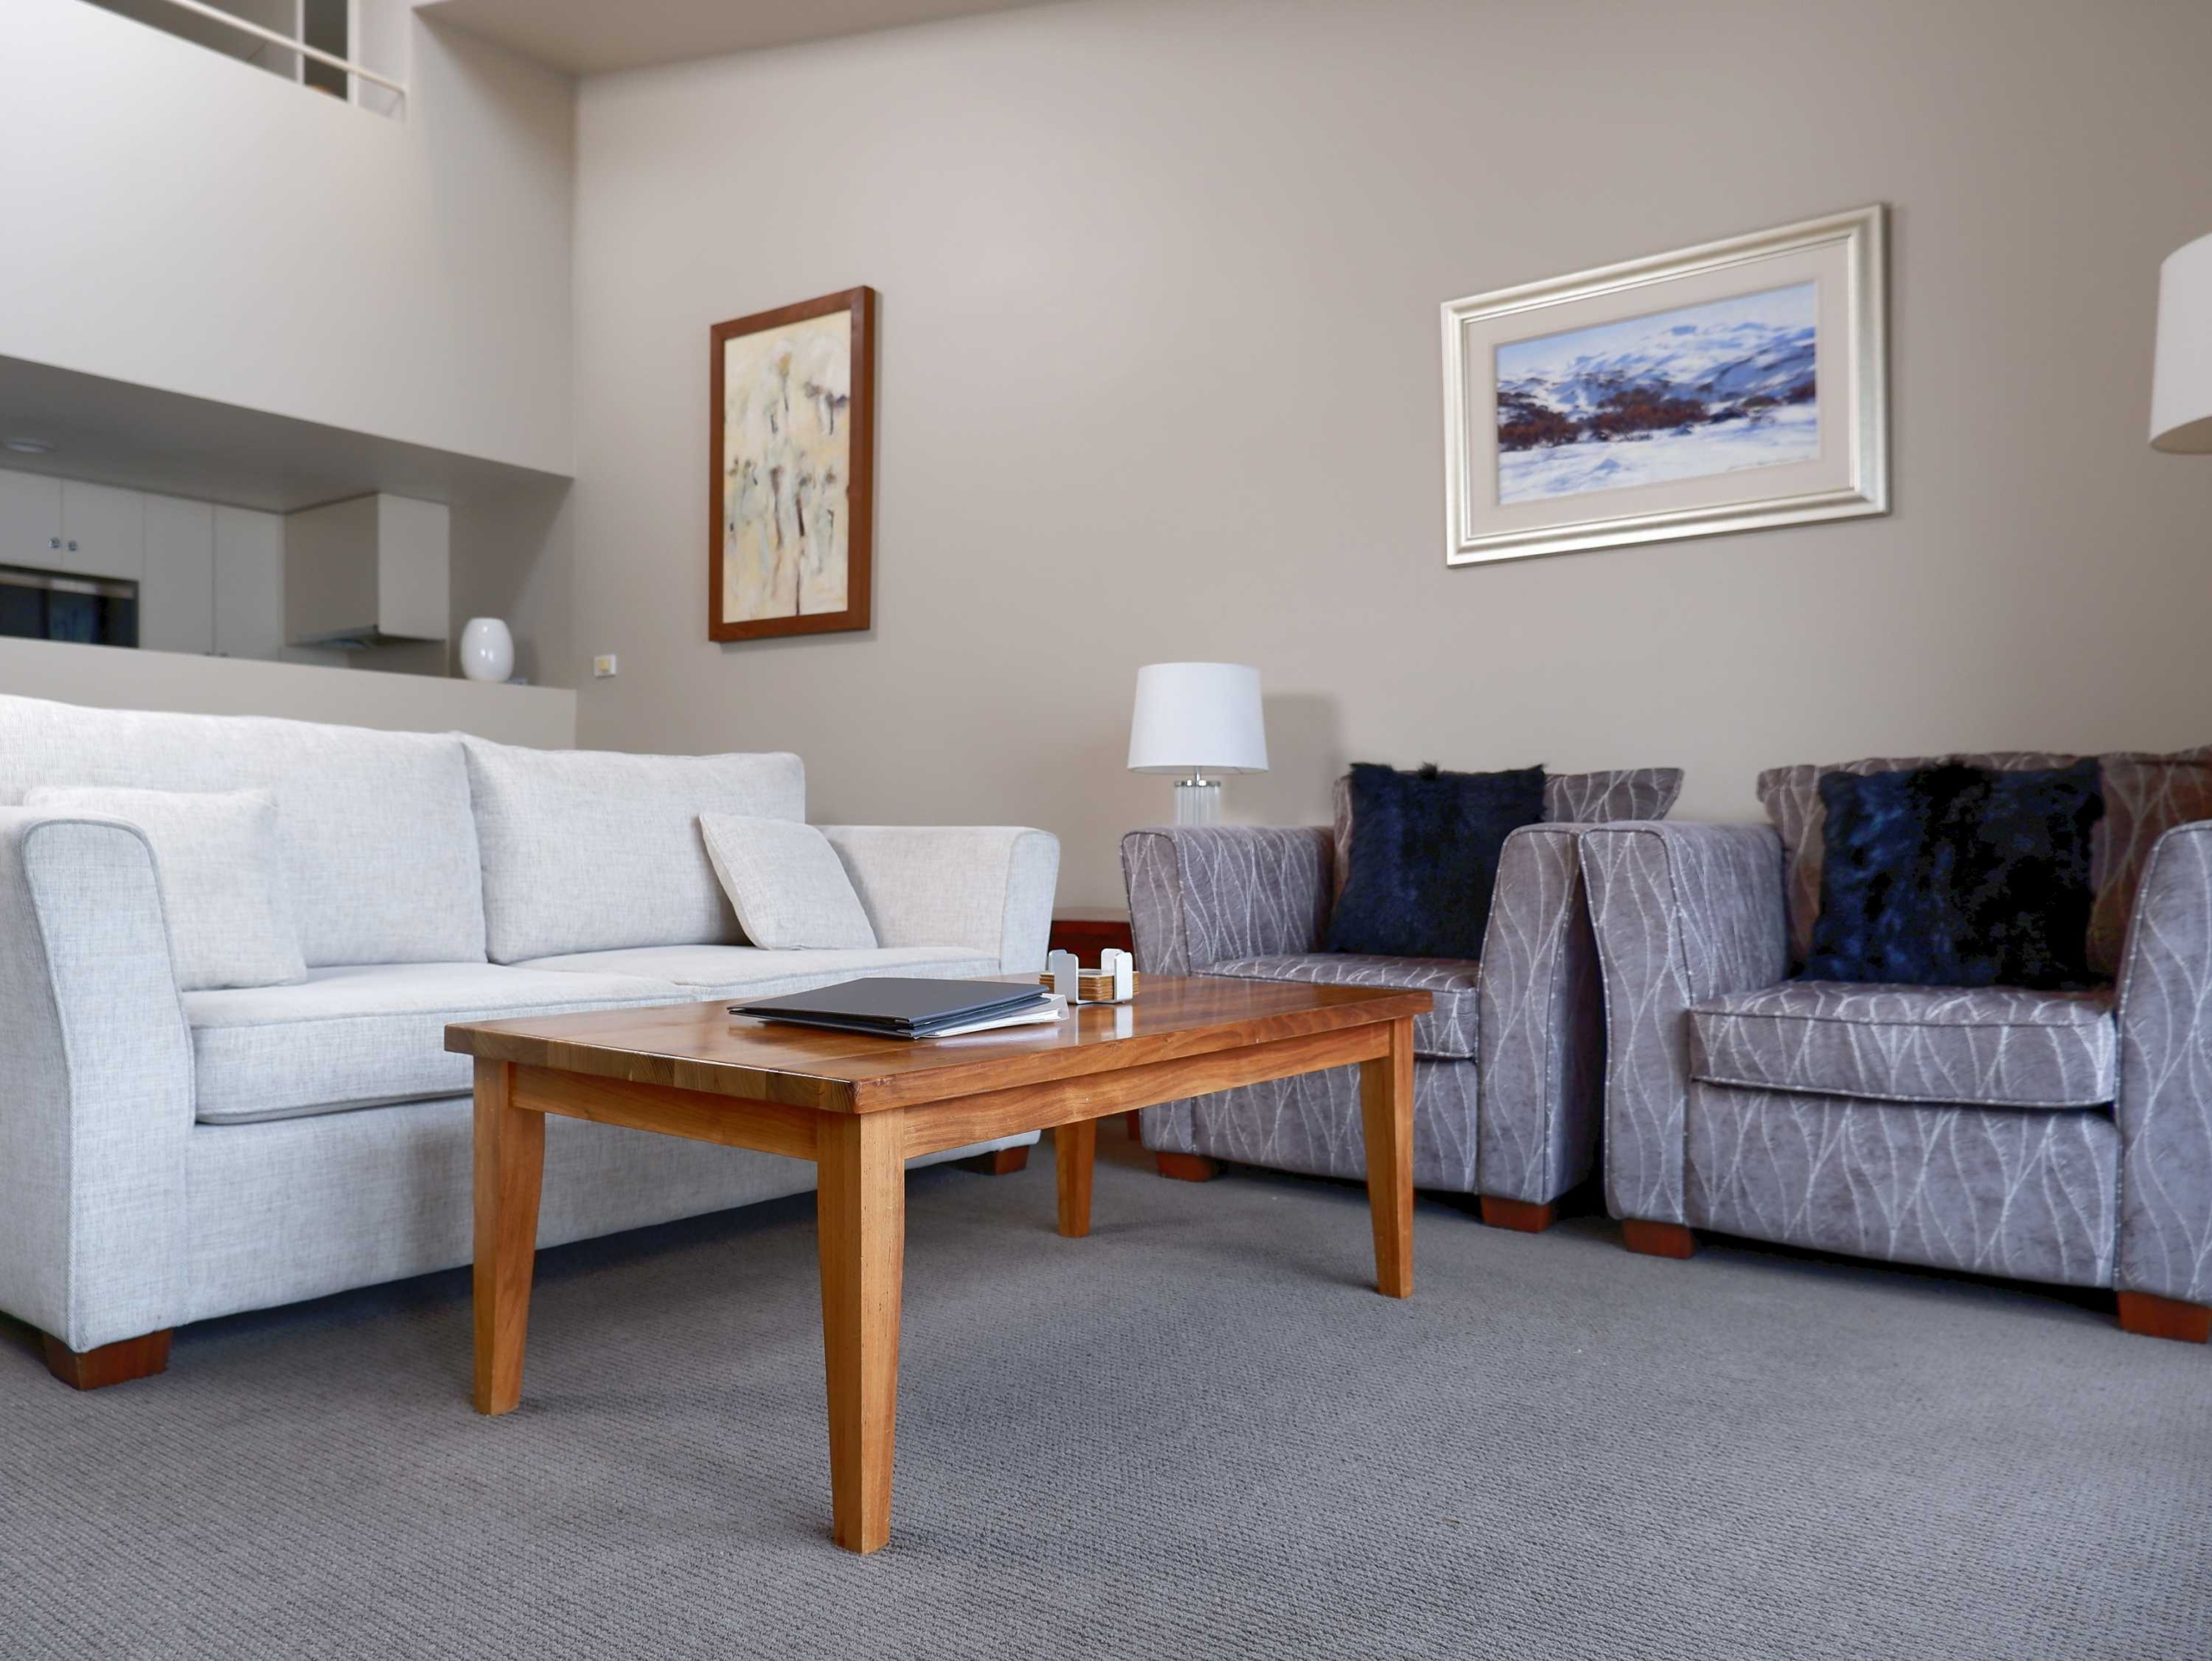 F2-Squatters-Run-Thredbo-Luxury-Apartments-1-Bed-Loft-Deluxe-Room-345-persons-see-squatters.com_.au--scaled